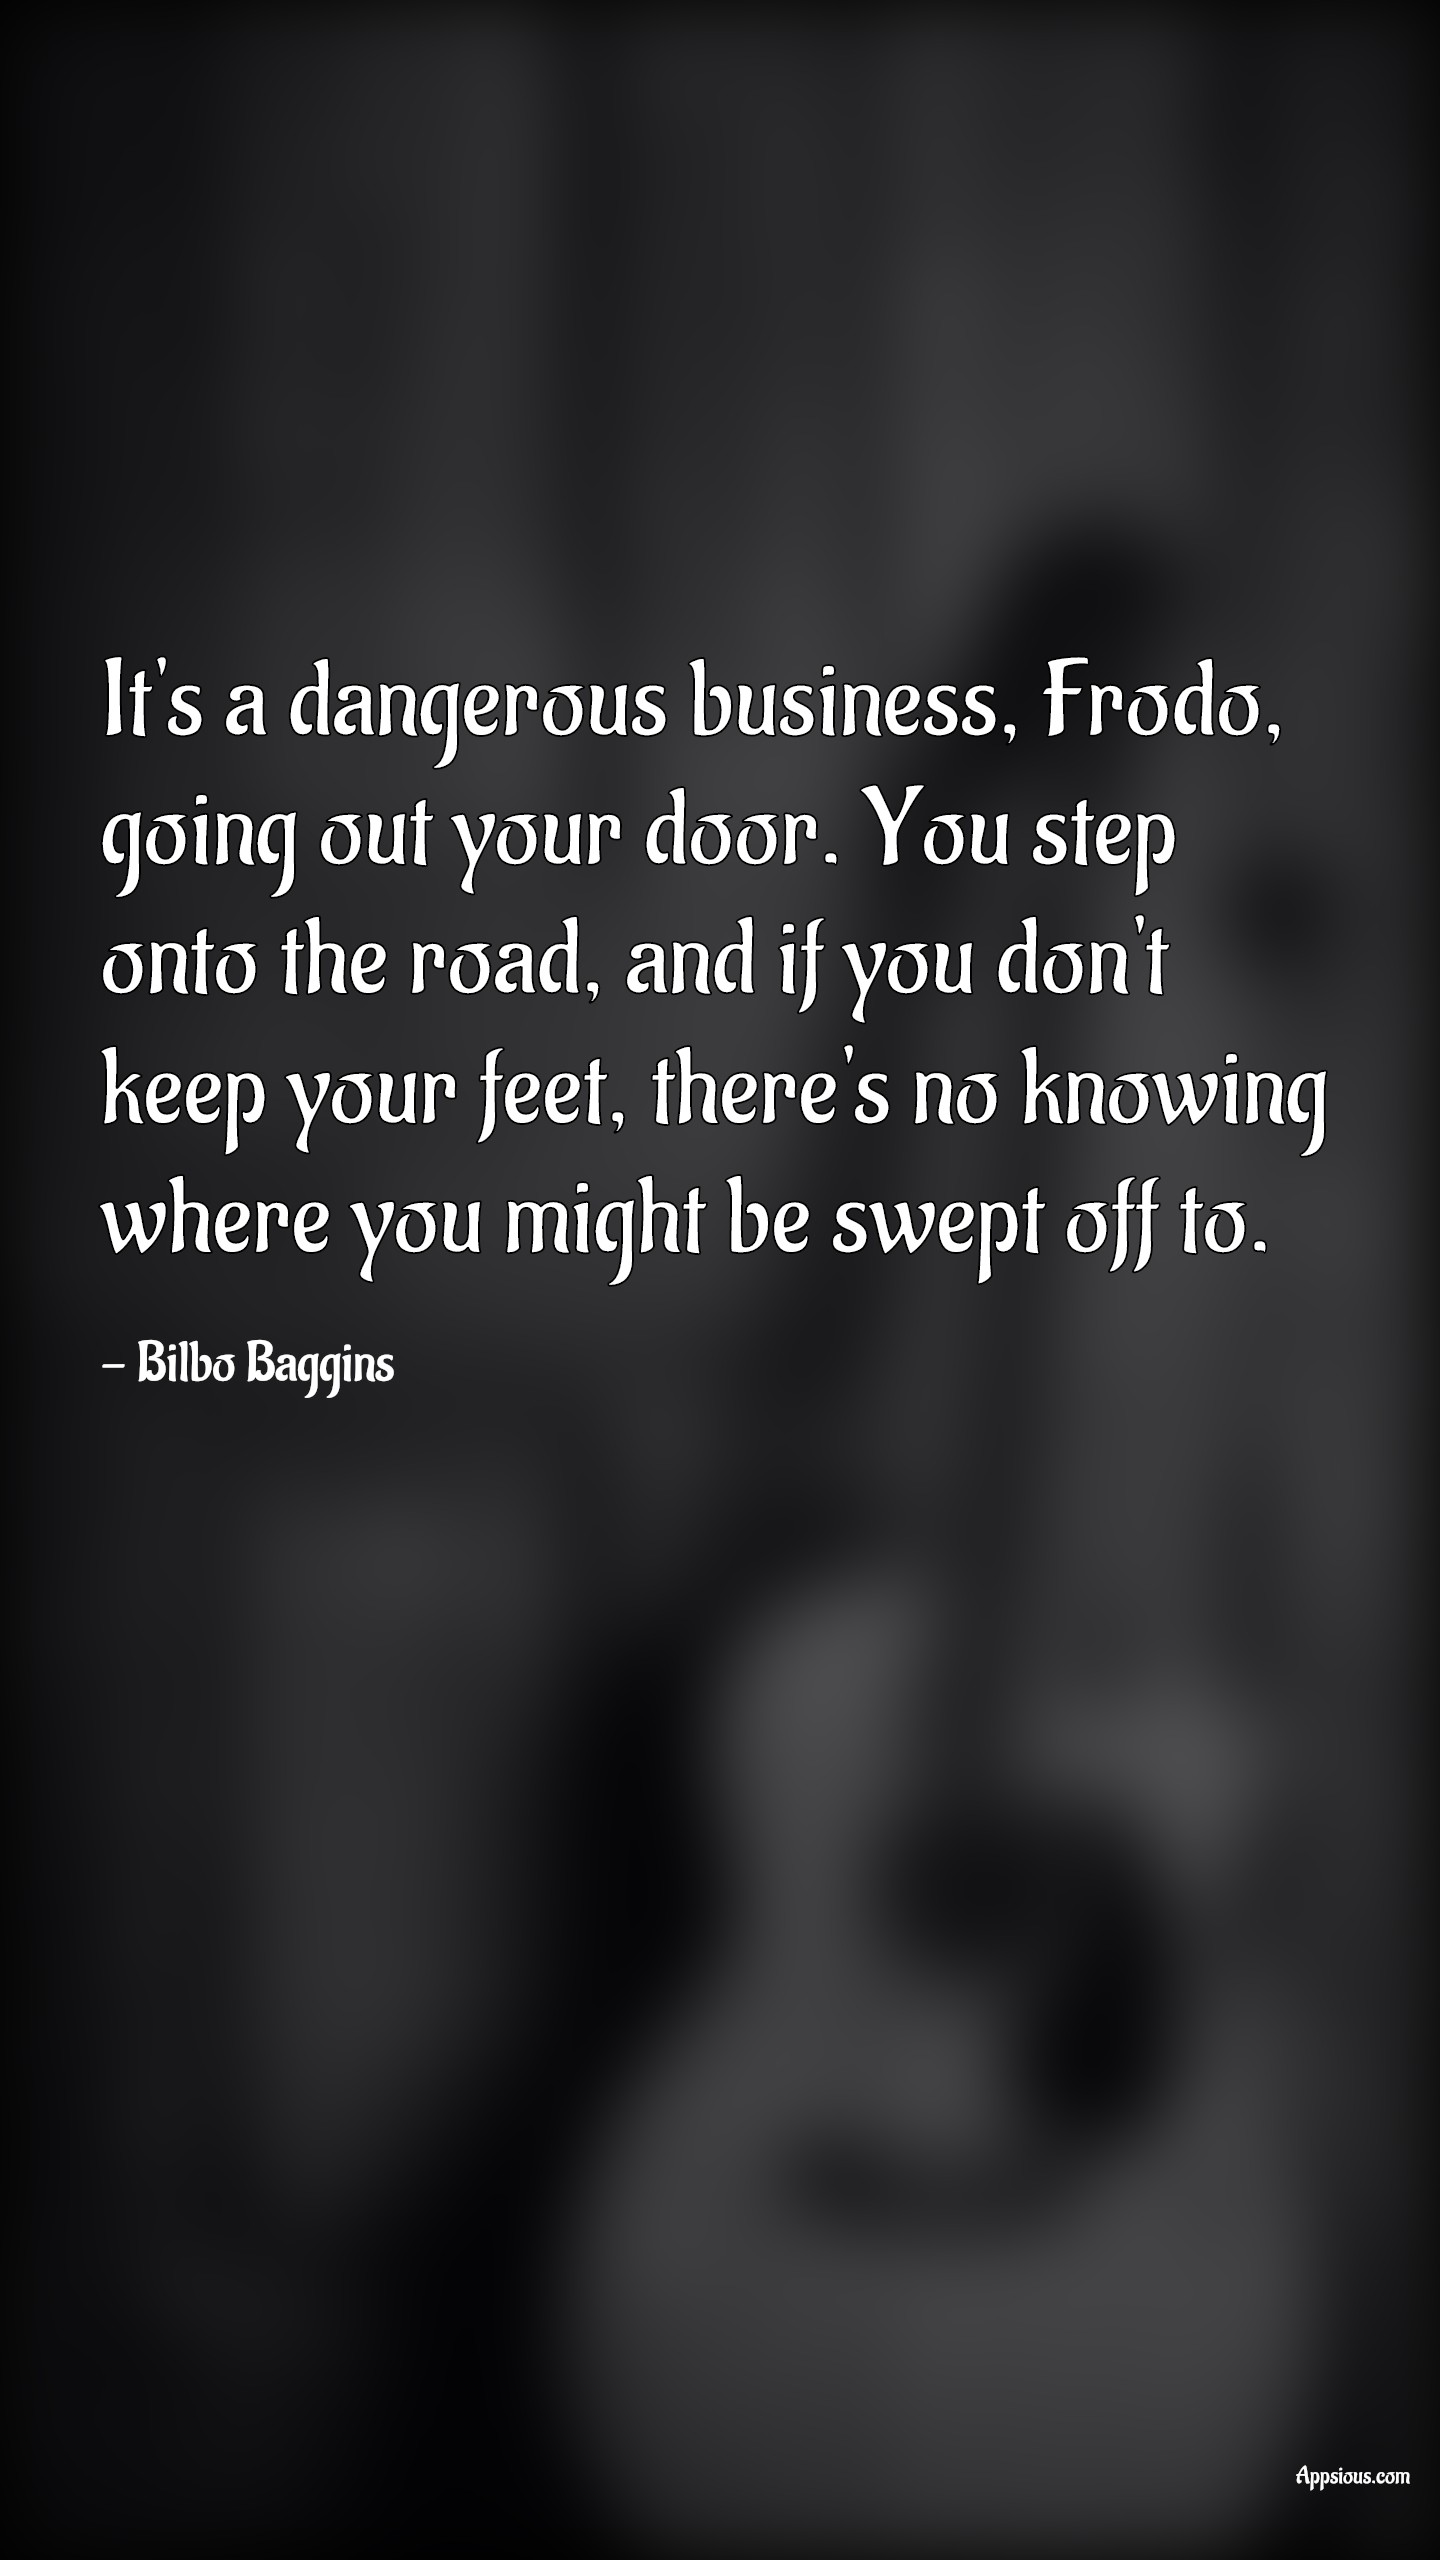 It's a dangerous business, Frodo, going out your door. You step onto the road, and if you don't keep your feet, there's no knowing where you might be swept off to.